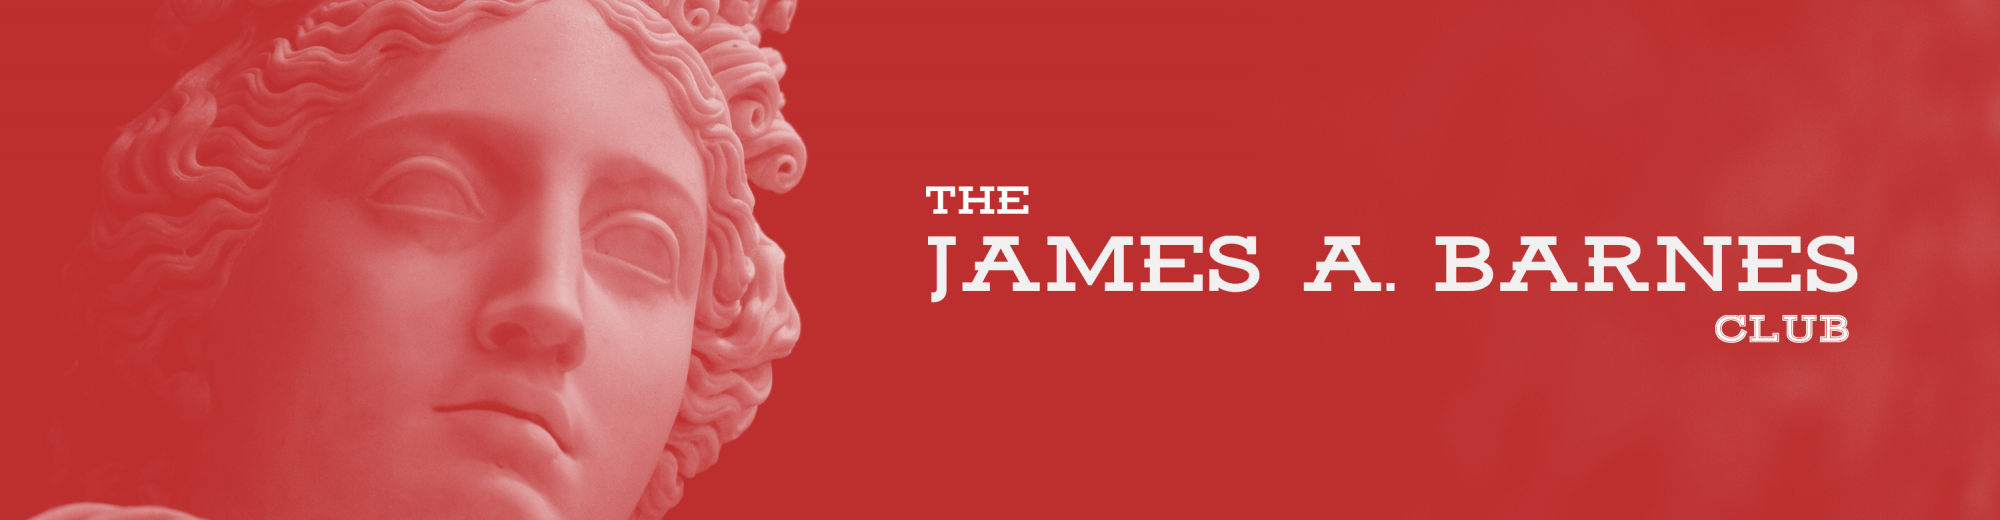 The James A. Barnes Club